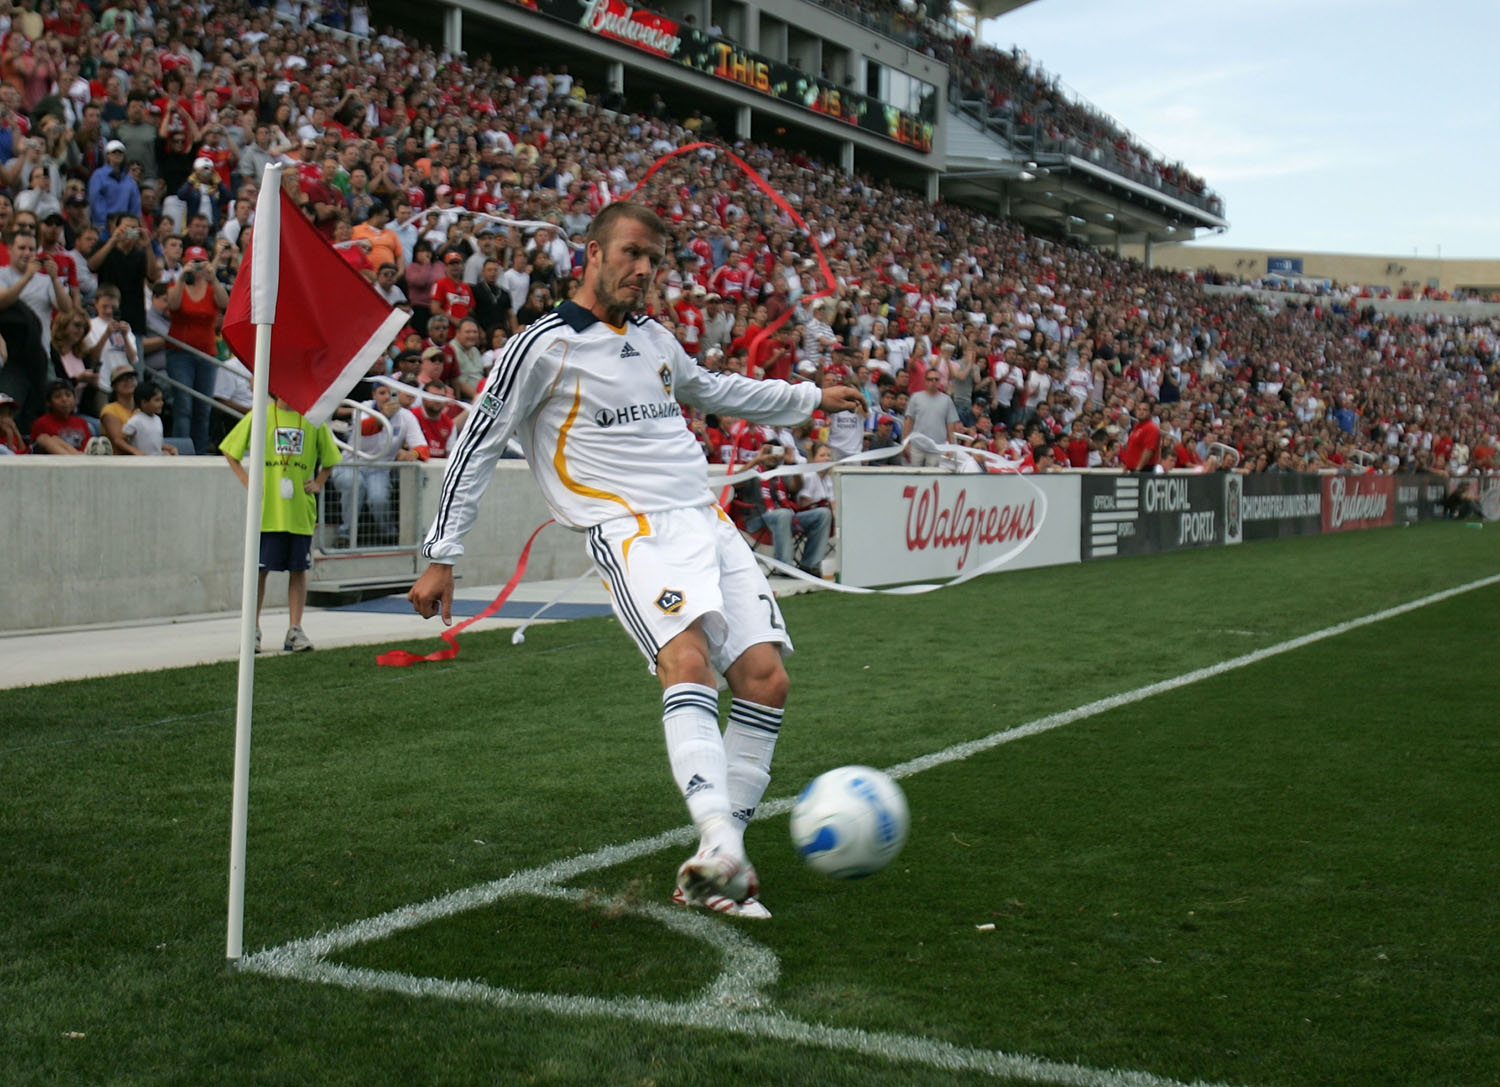 b7308a8c1 Taking a corner kick against the Chicago Fire on October 21